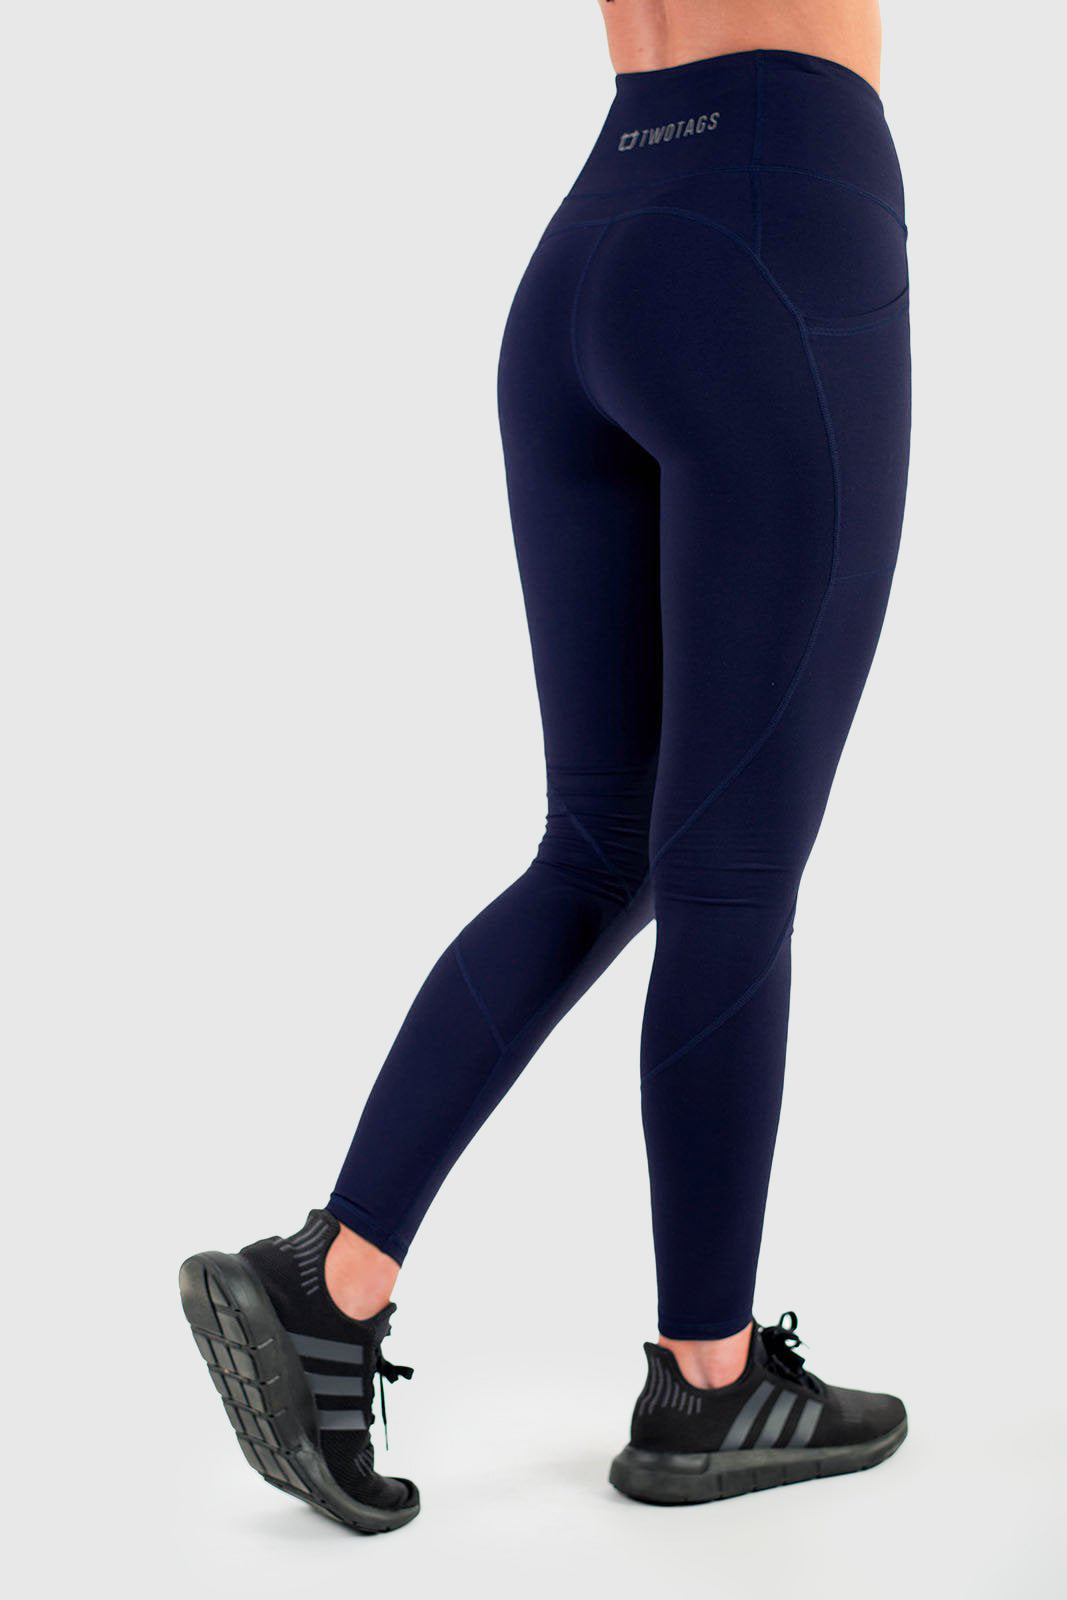 78021547f2a Sweetheart Leggings - Navy Blue – Twotags